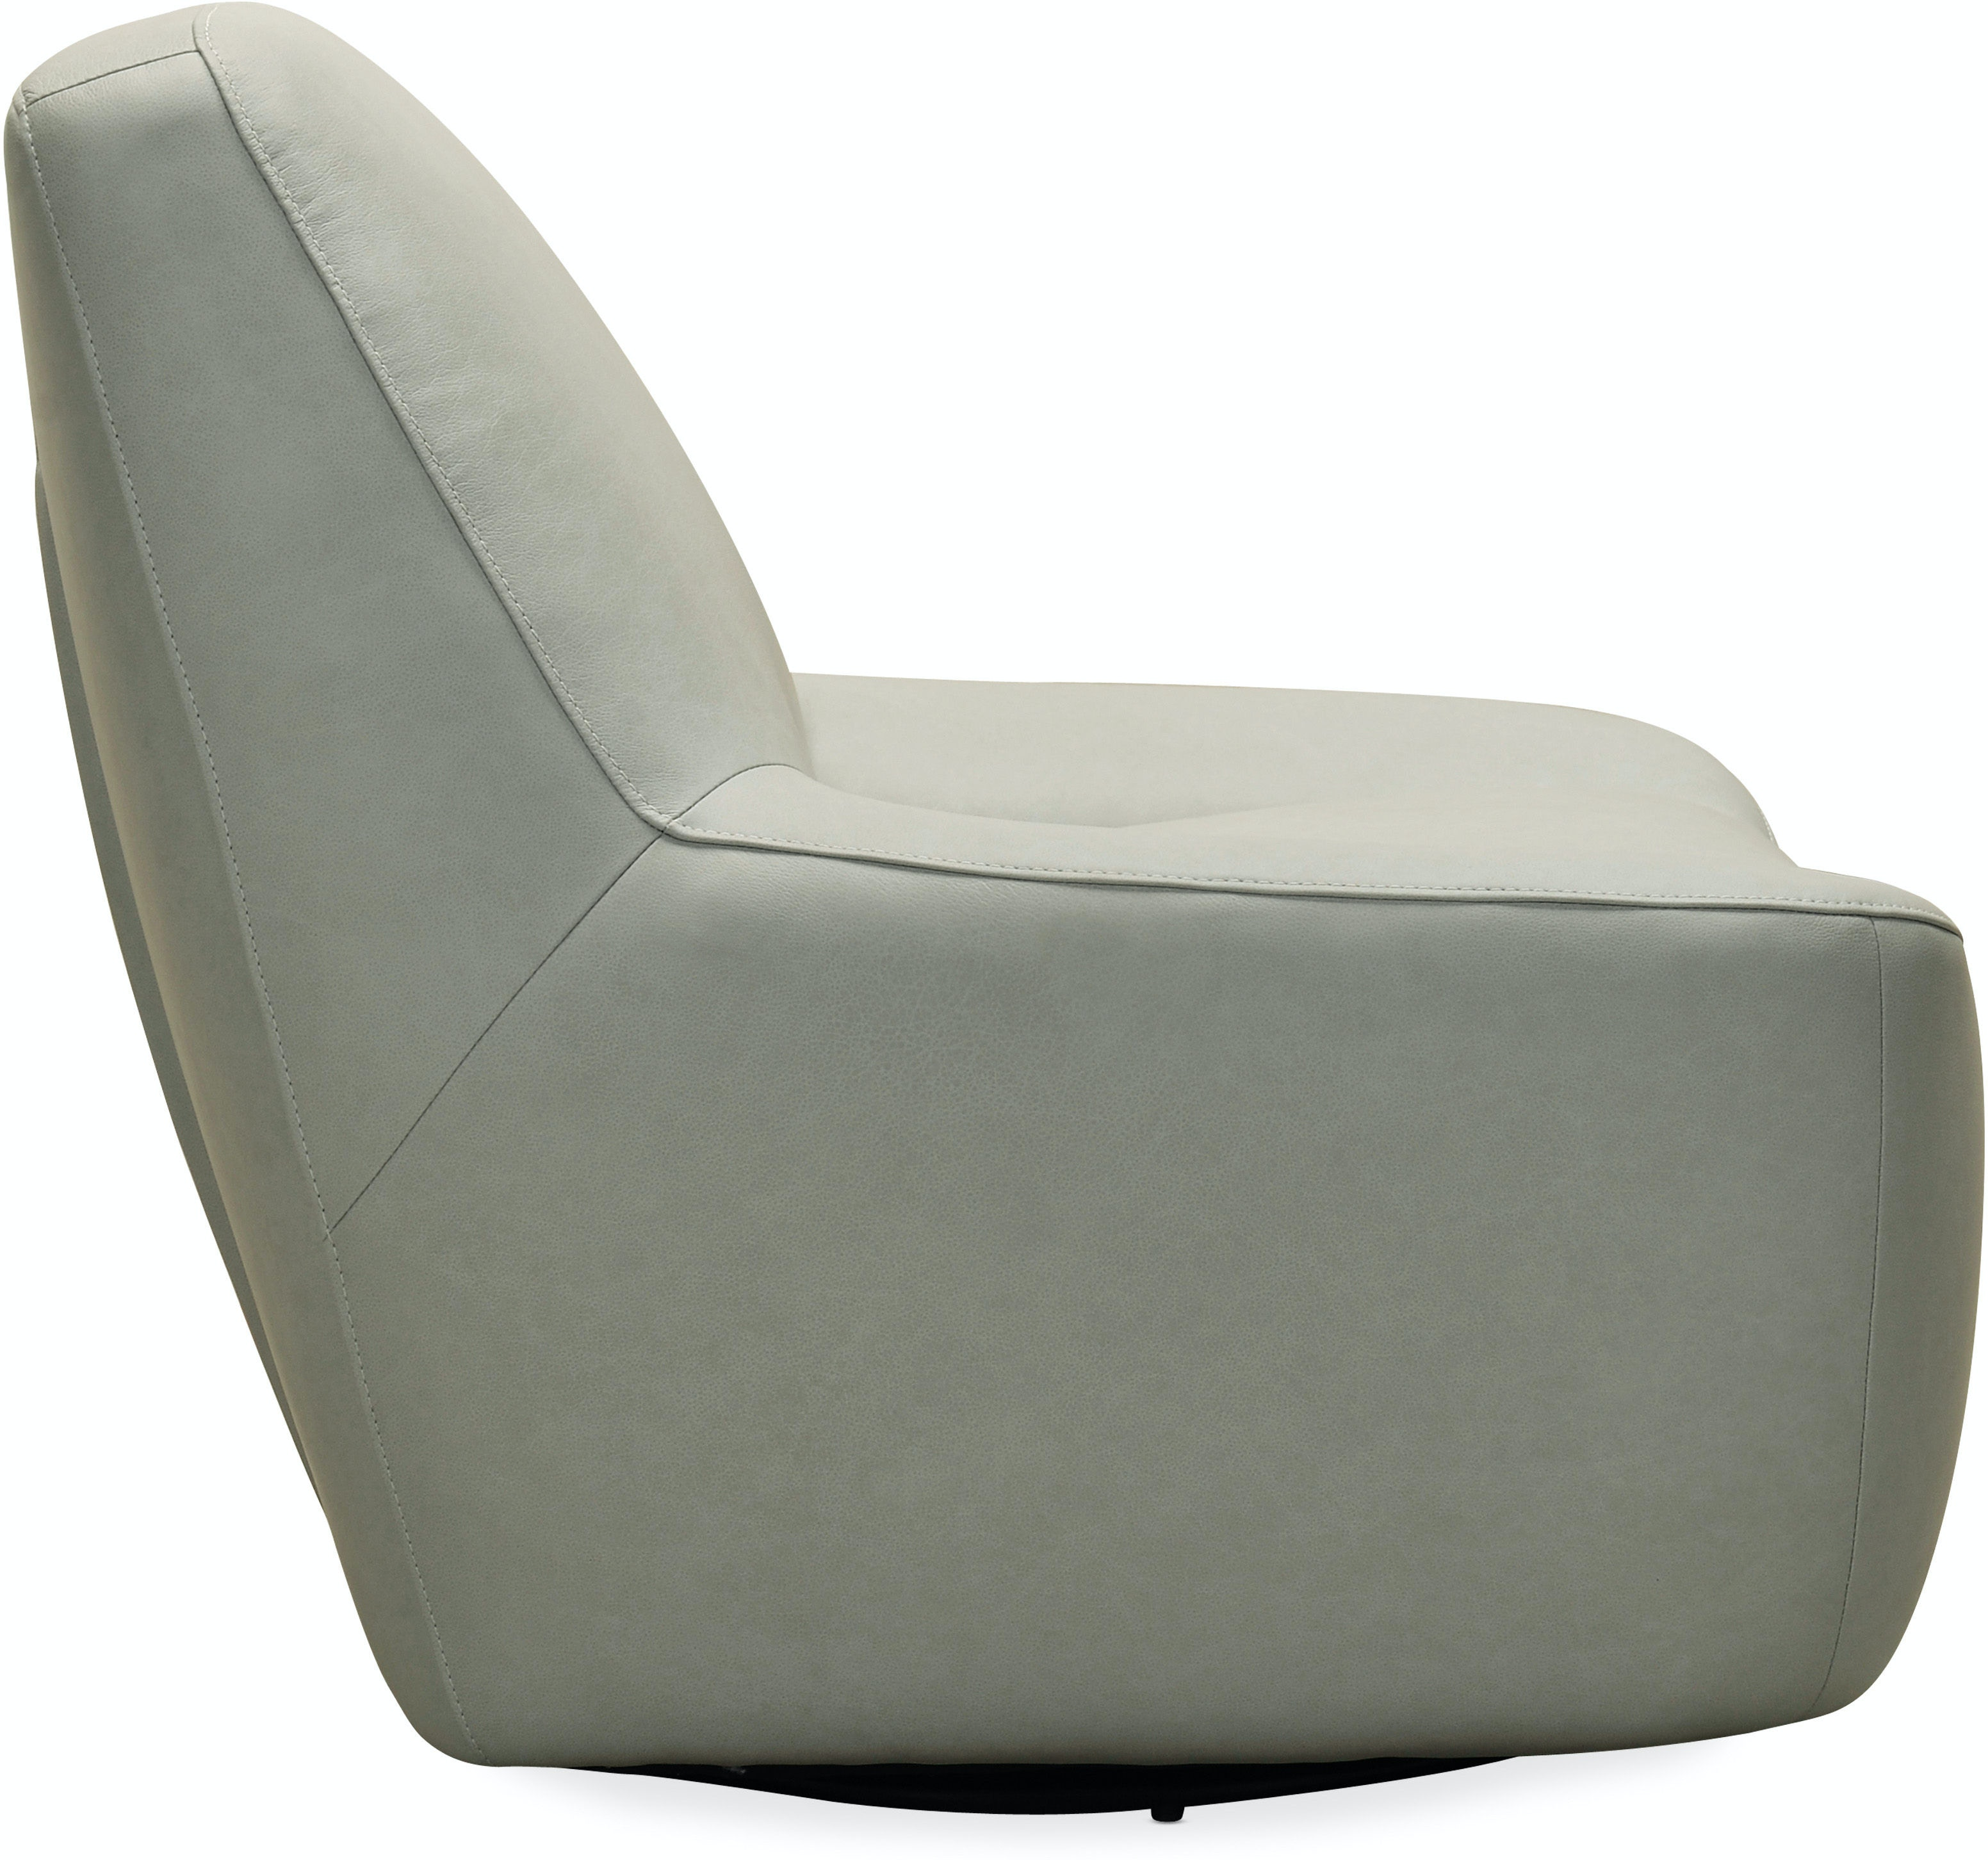 Furniture Living Room Maneuver Leather Swivel Chair